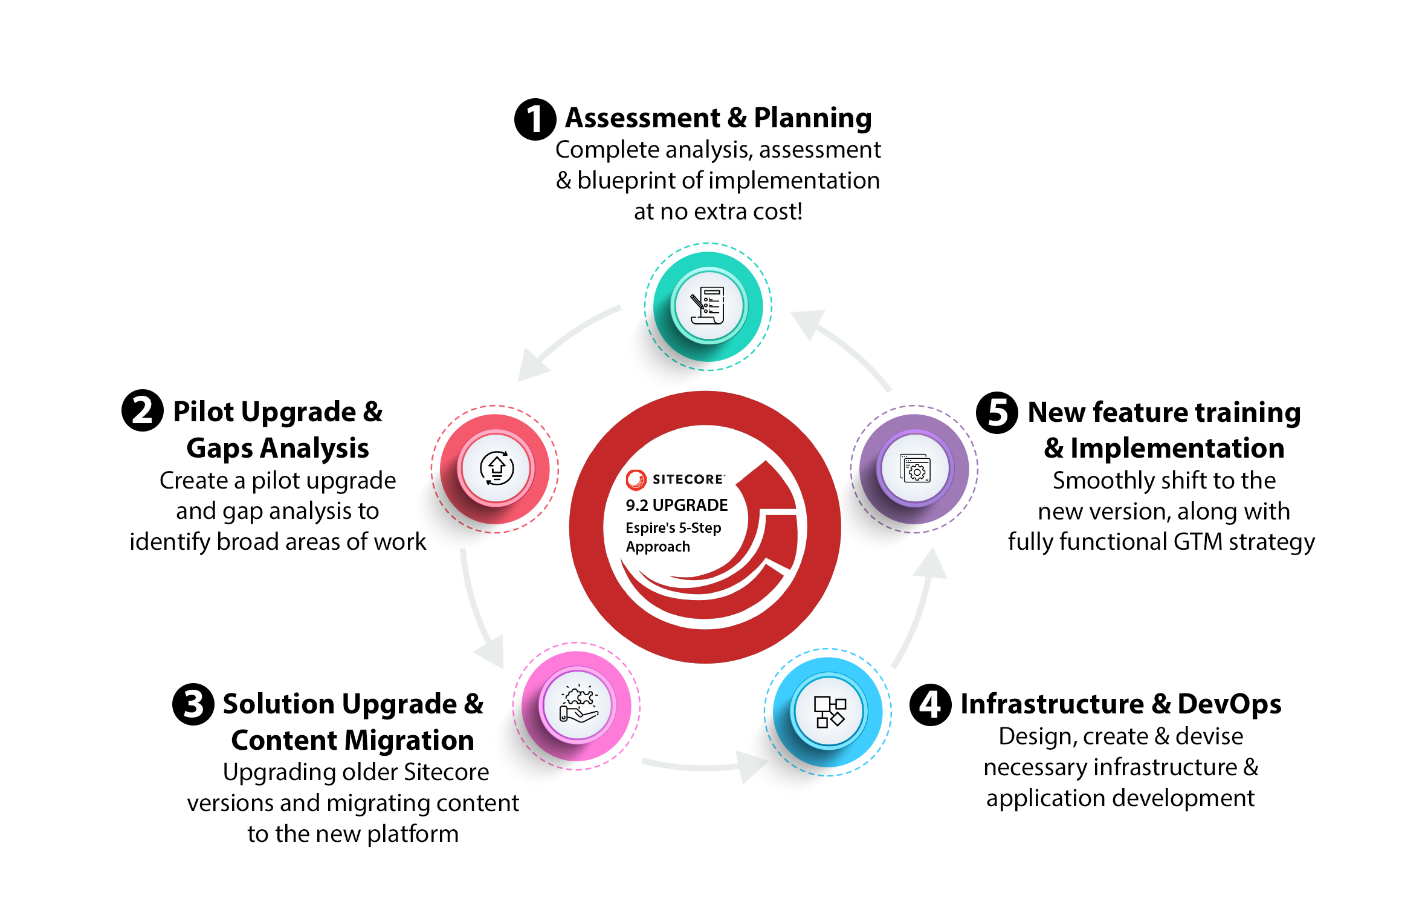 Espire's 5 Step Approach to Sitecore 9.2 Upgrade